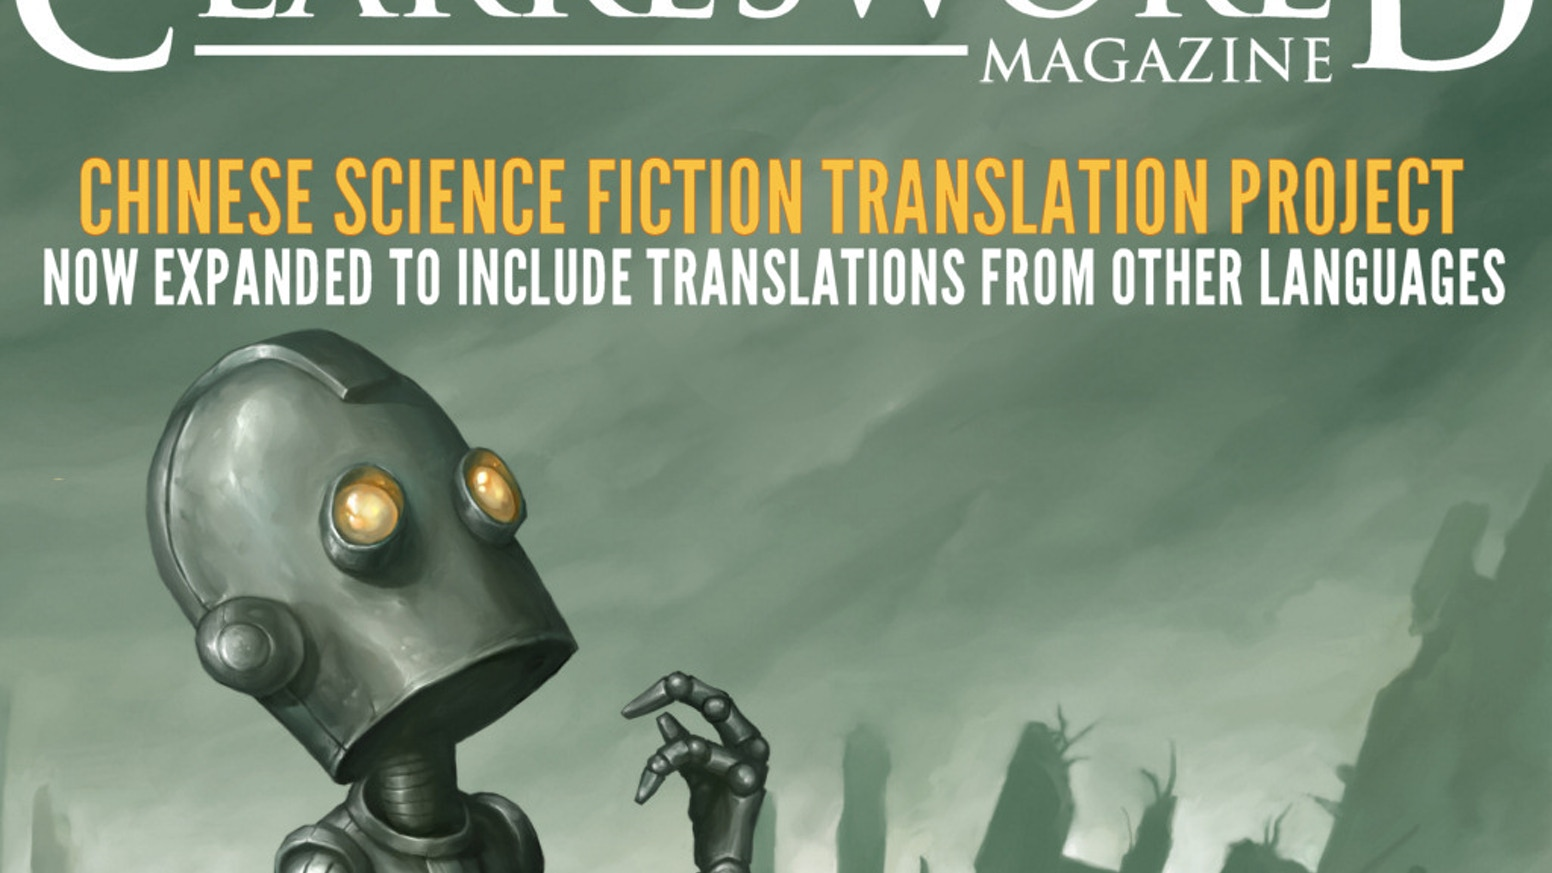 There's a whole world of great science fiction published in other languages. Help us translate and publish them in Clarkesworld!